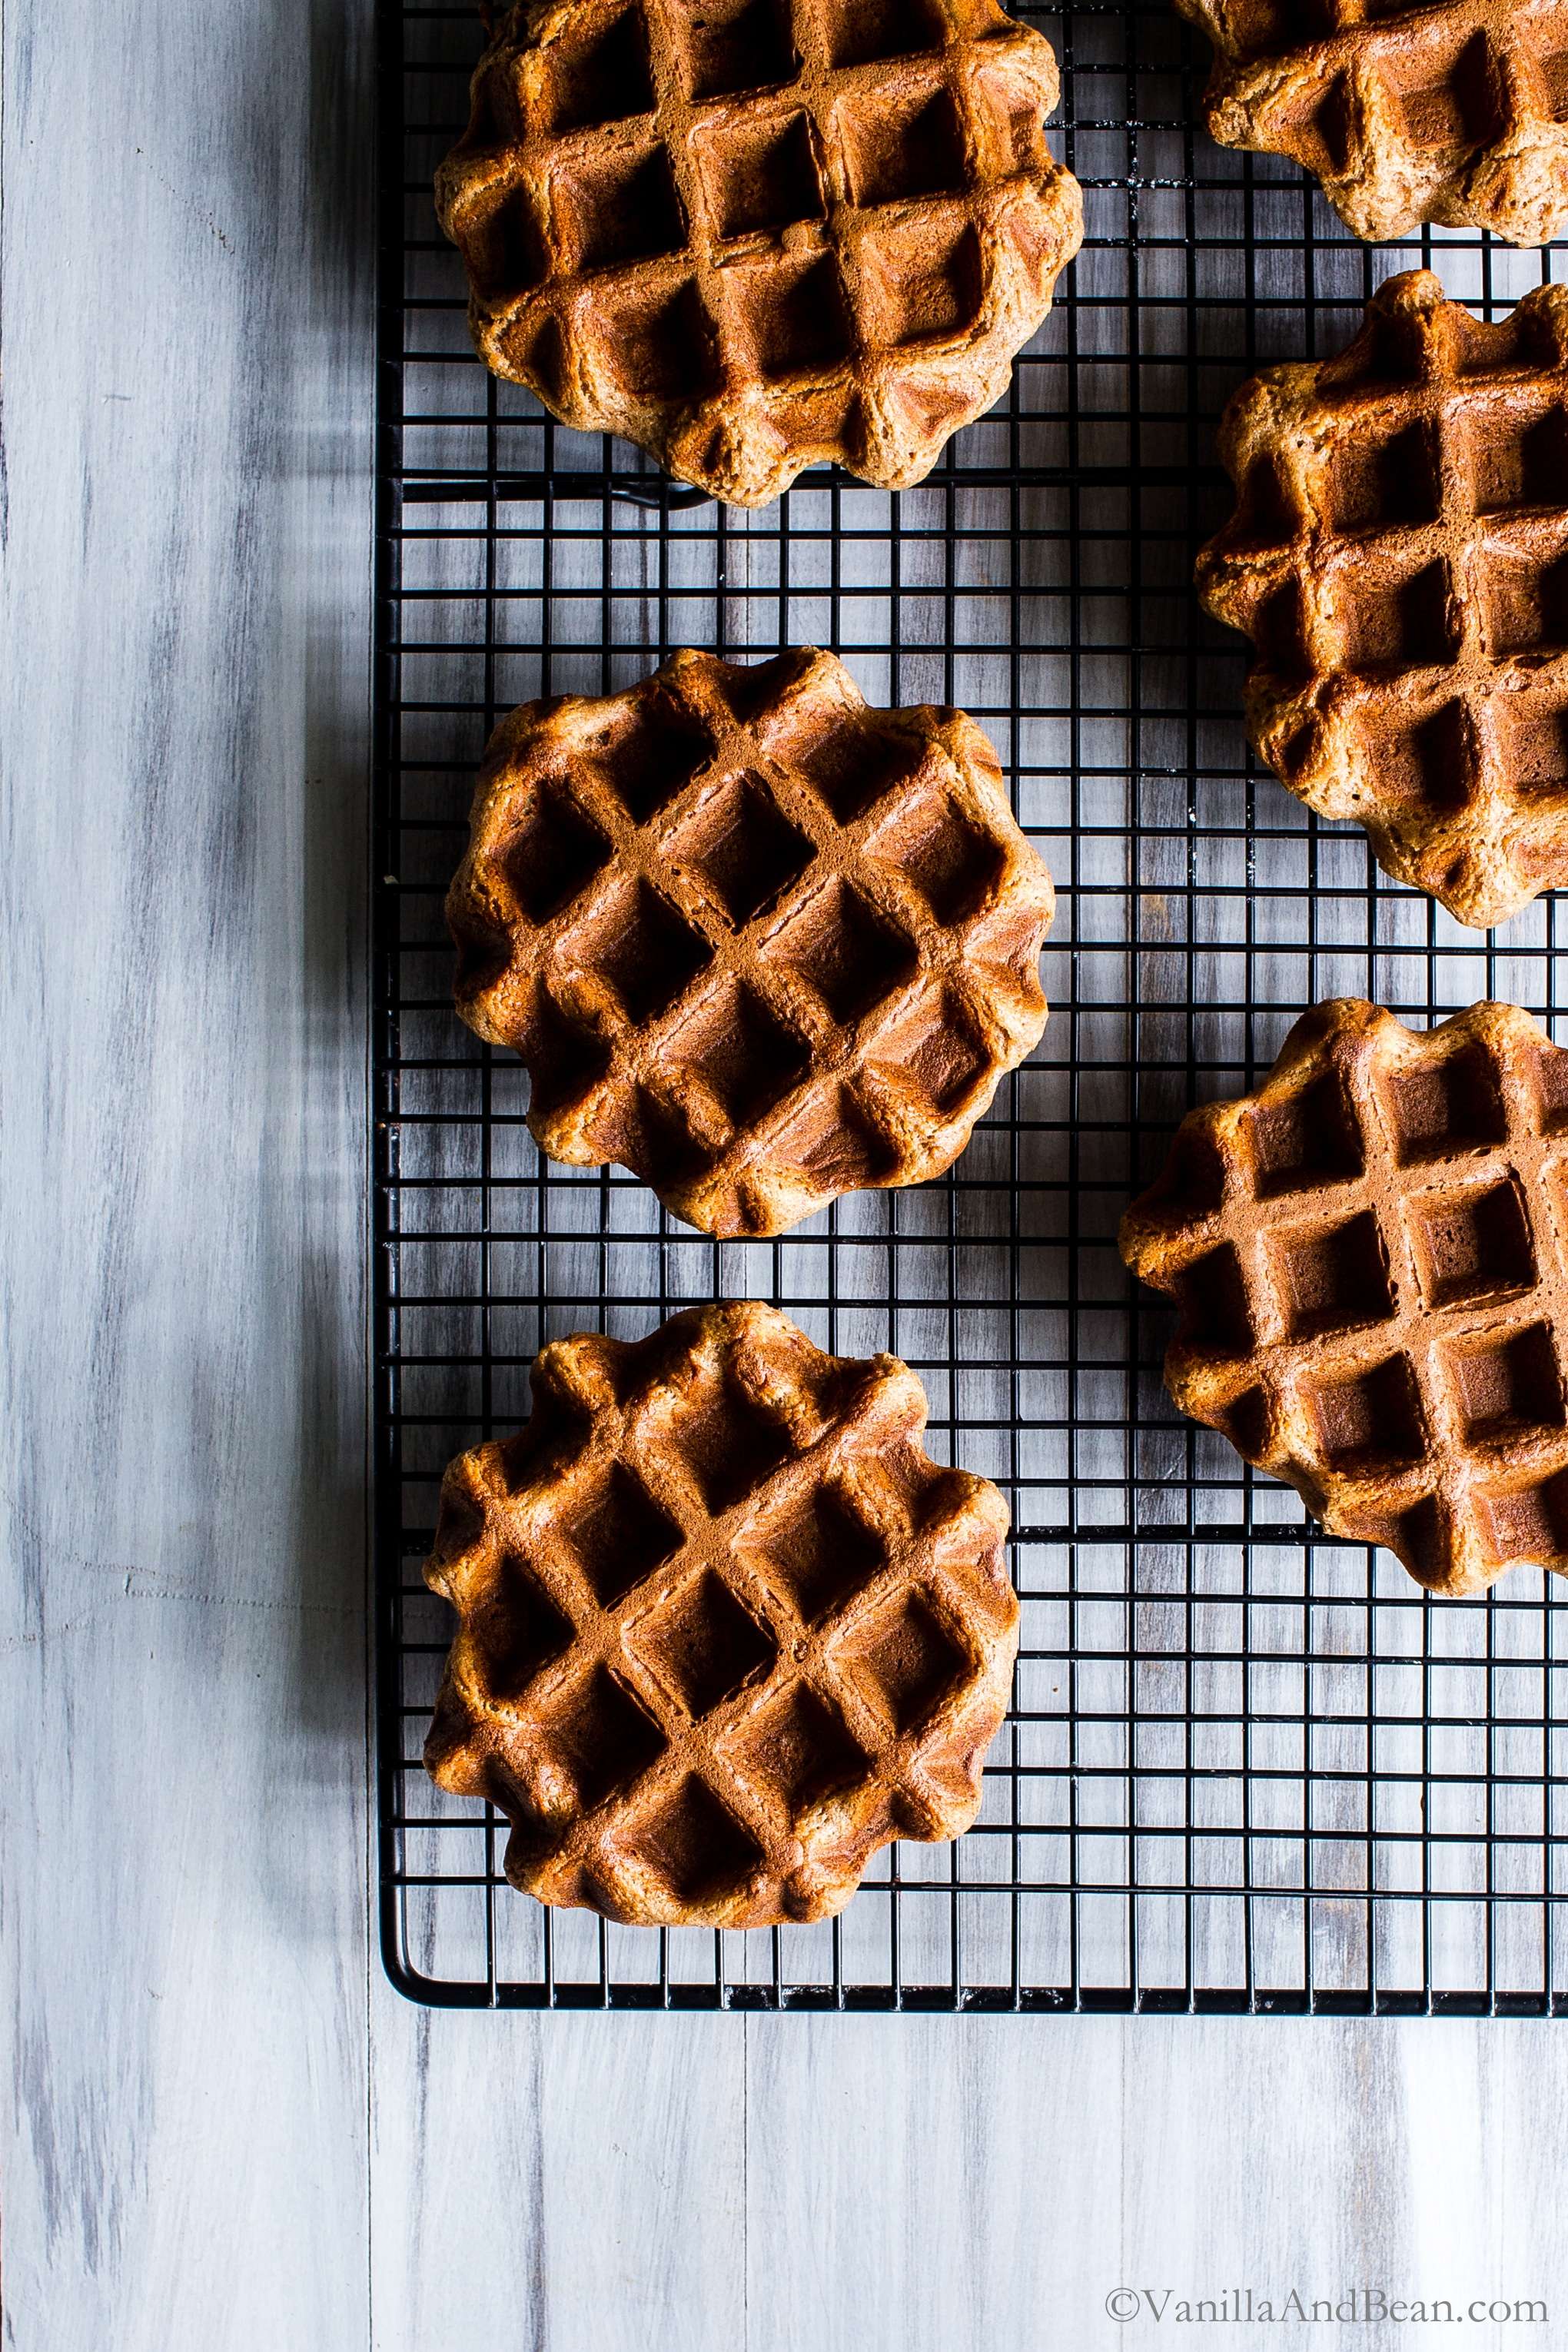 Overhead shot of baked waffles on a cooling rack.